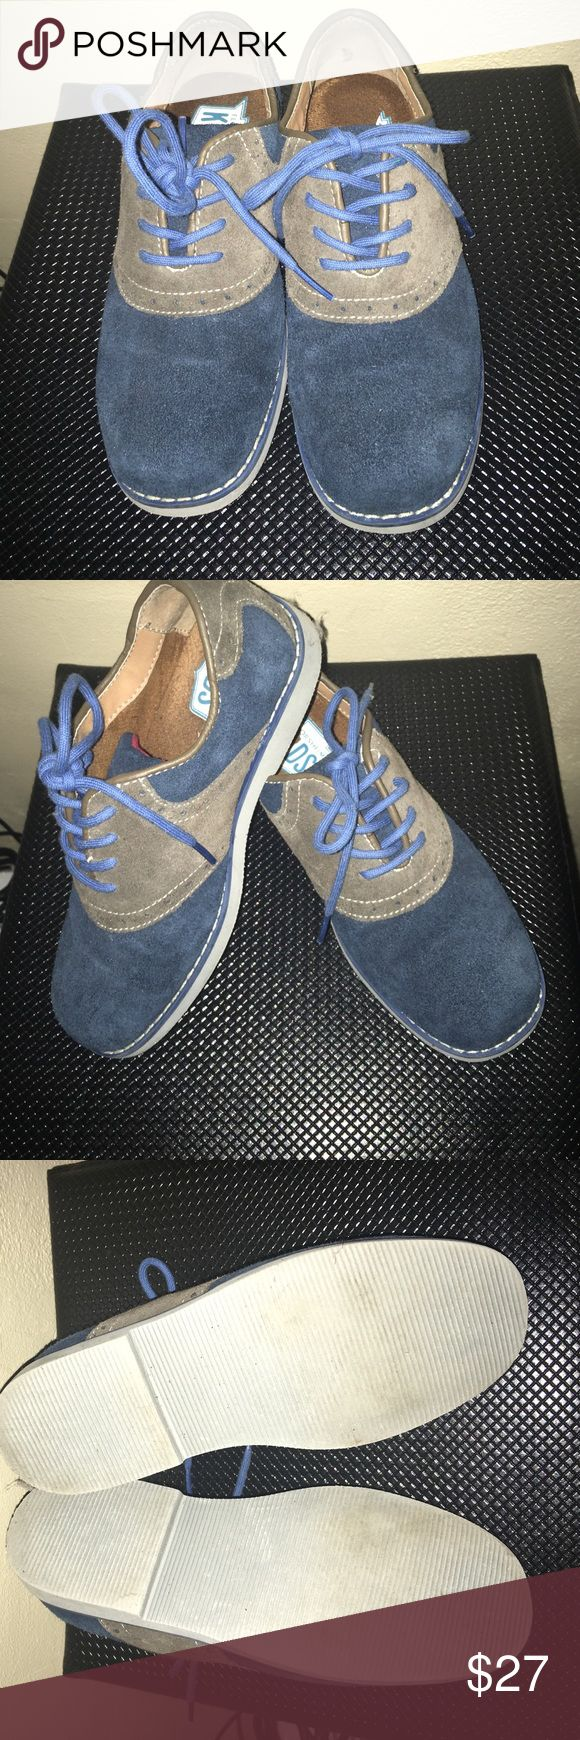 Florsheim Kids Oxford Shoe Navy Blue & Brown Florsheim Oxford Shoes! Great quality and very comfortable dress shoe! Perfect for any little guy! Florsheim Shoes Dress Shoes